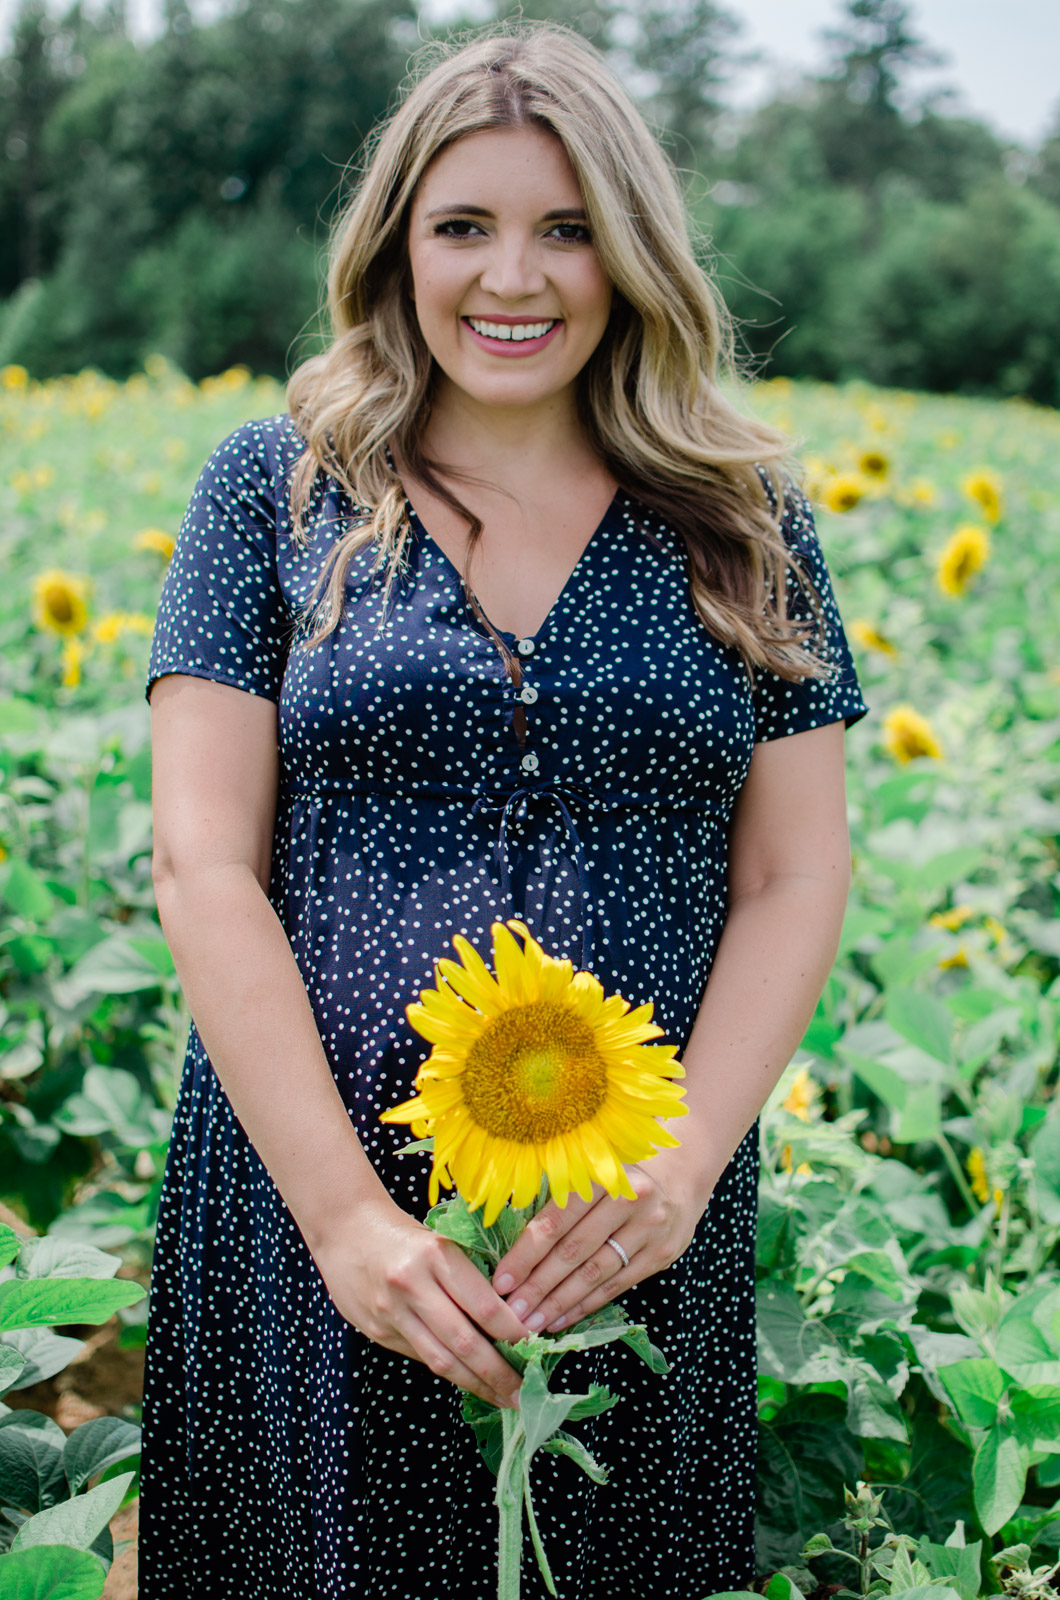 maternity sunflower photos - summer maternity photo session 36 weeks pregnancy | bylaurenm.com